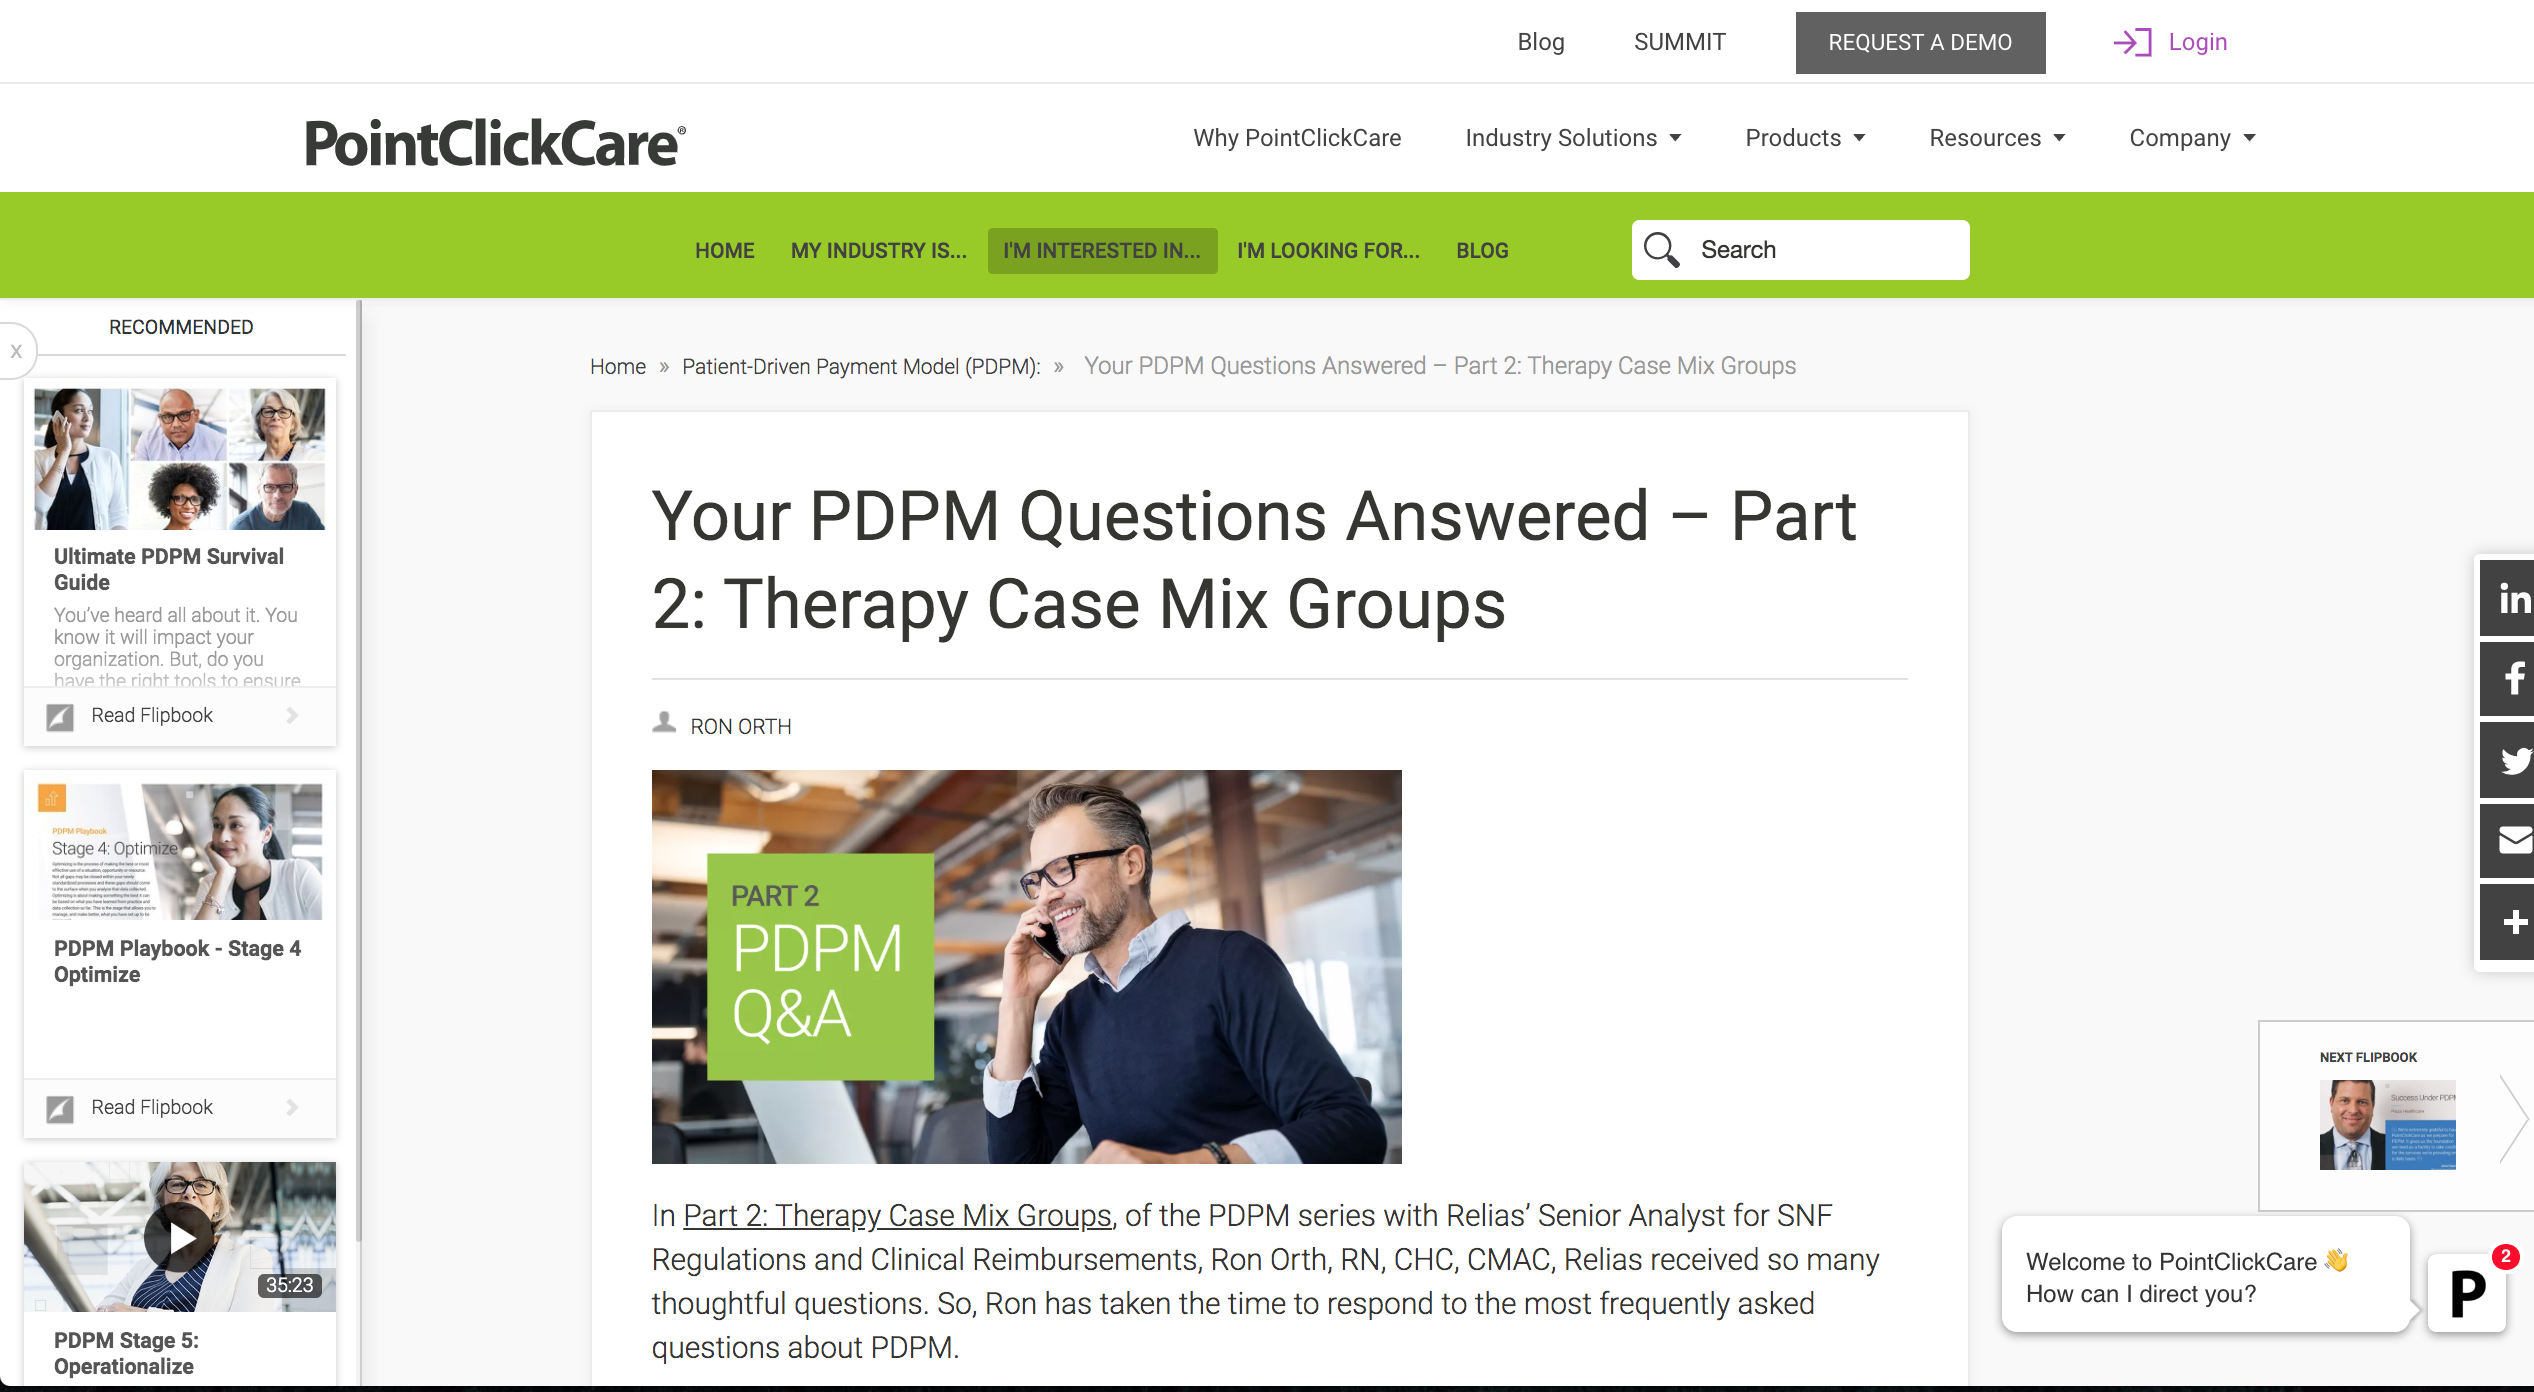 Blog post on PointClickCare's Resource Hub